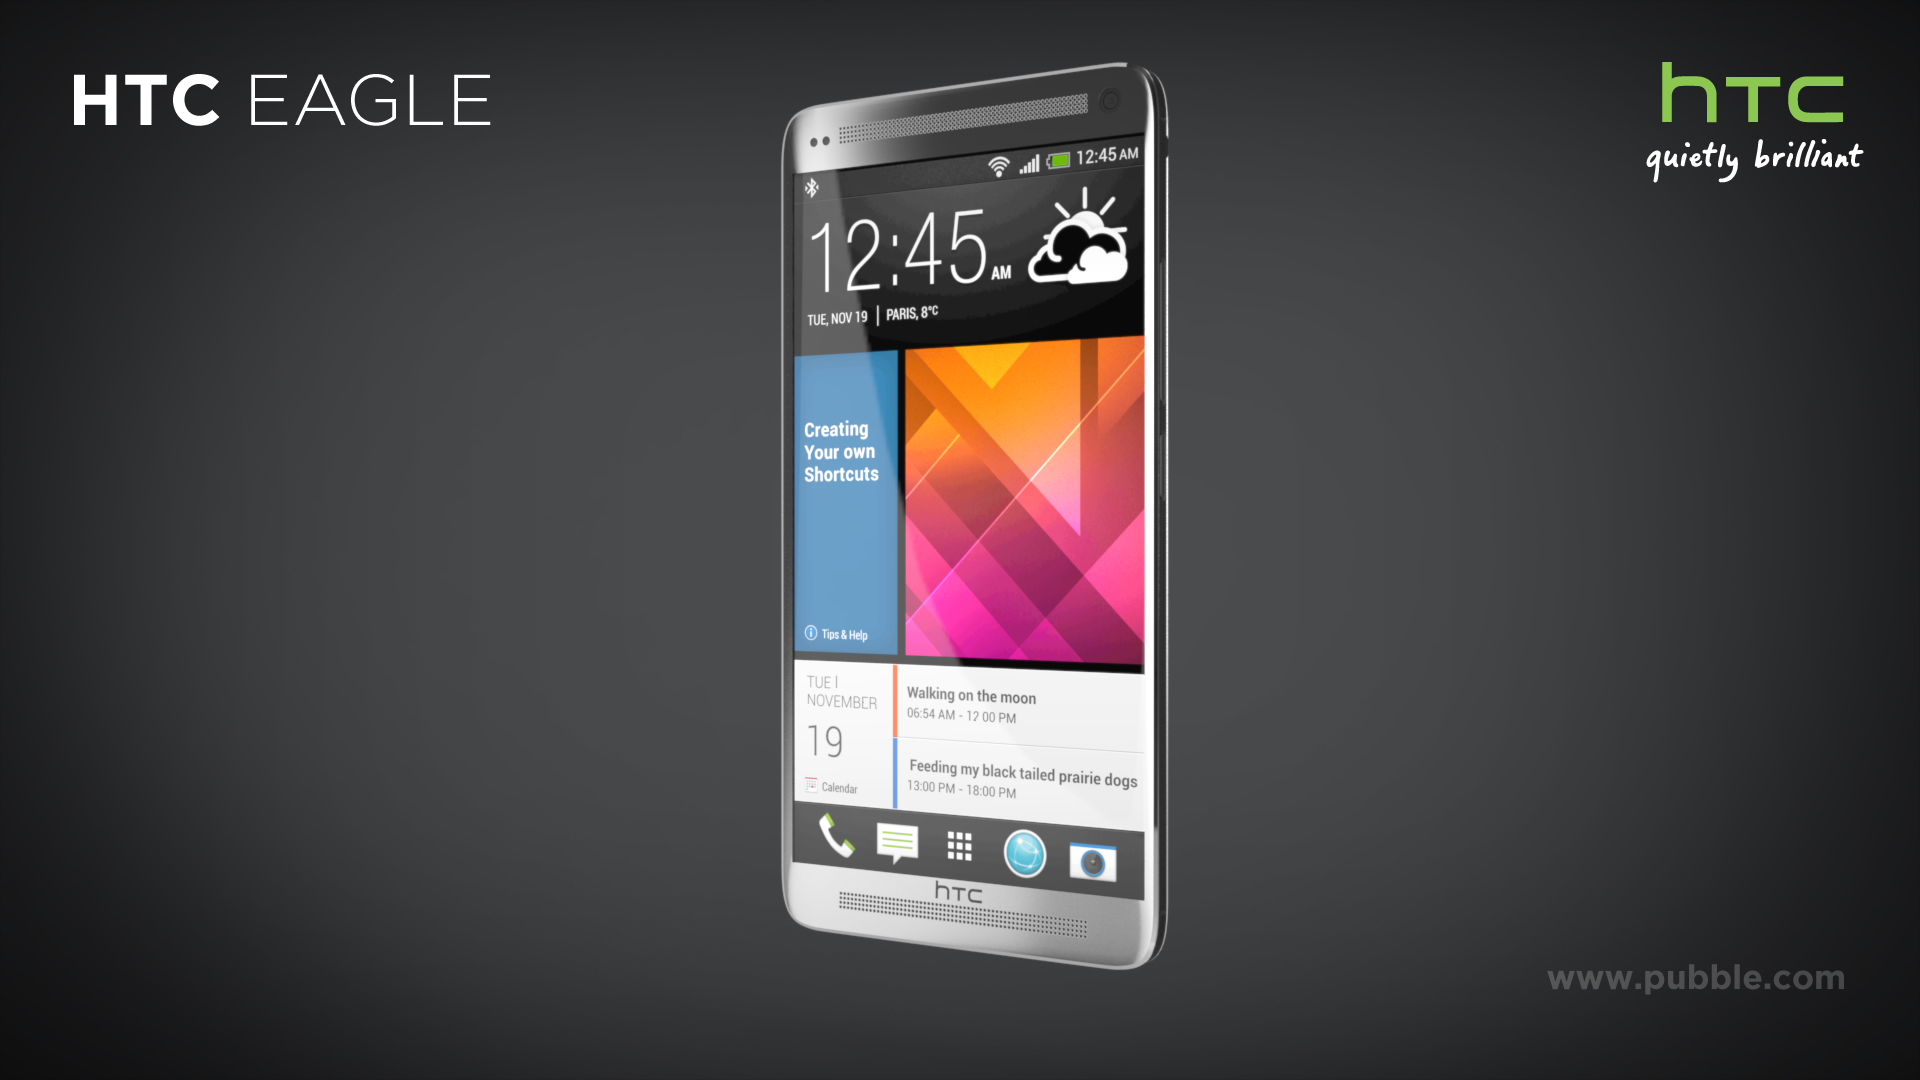 HTC Eagle - Simple